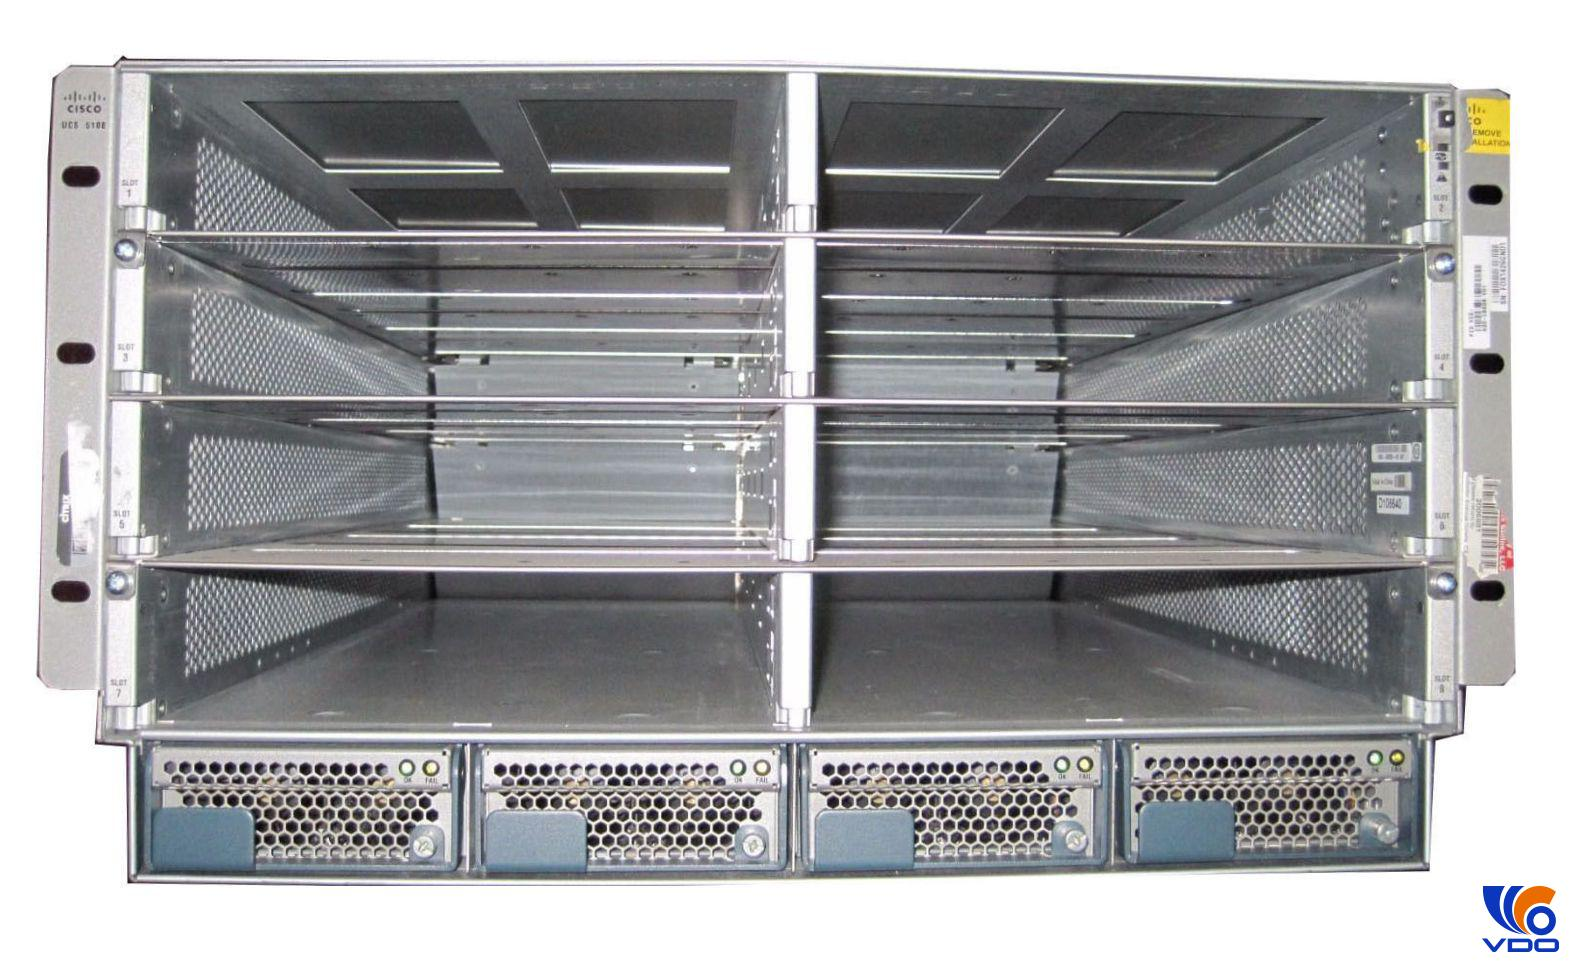 Lựa chọn chassis Sever